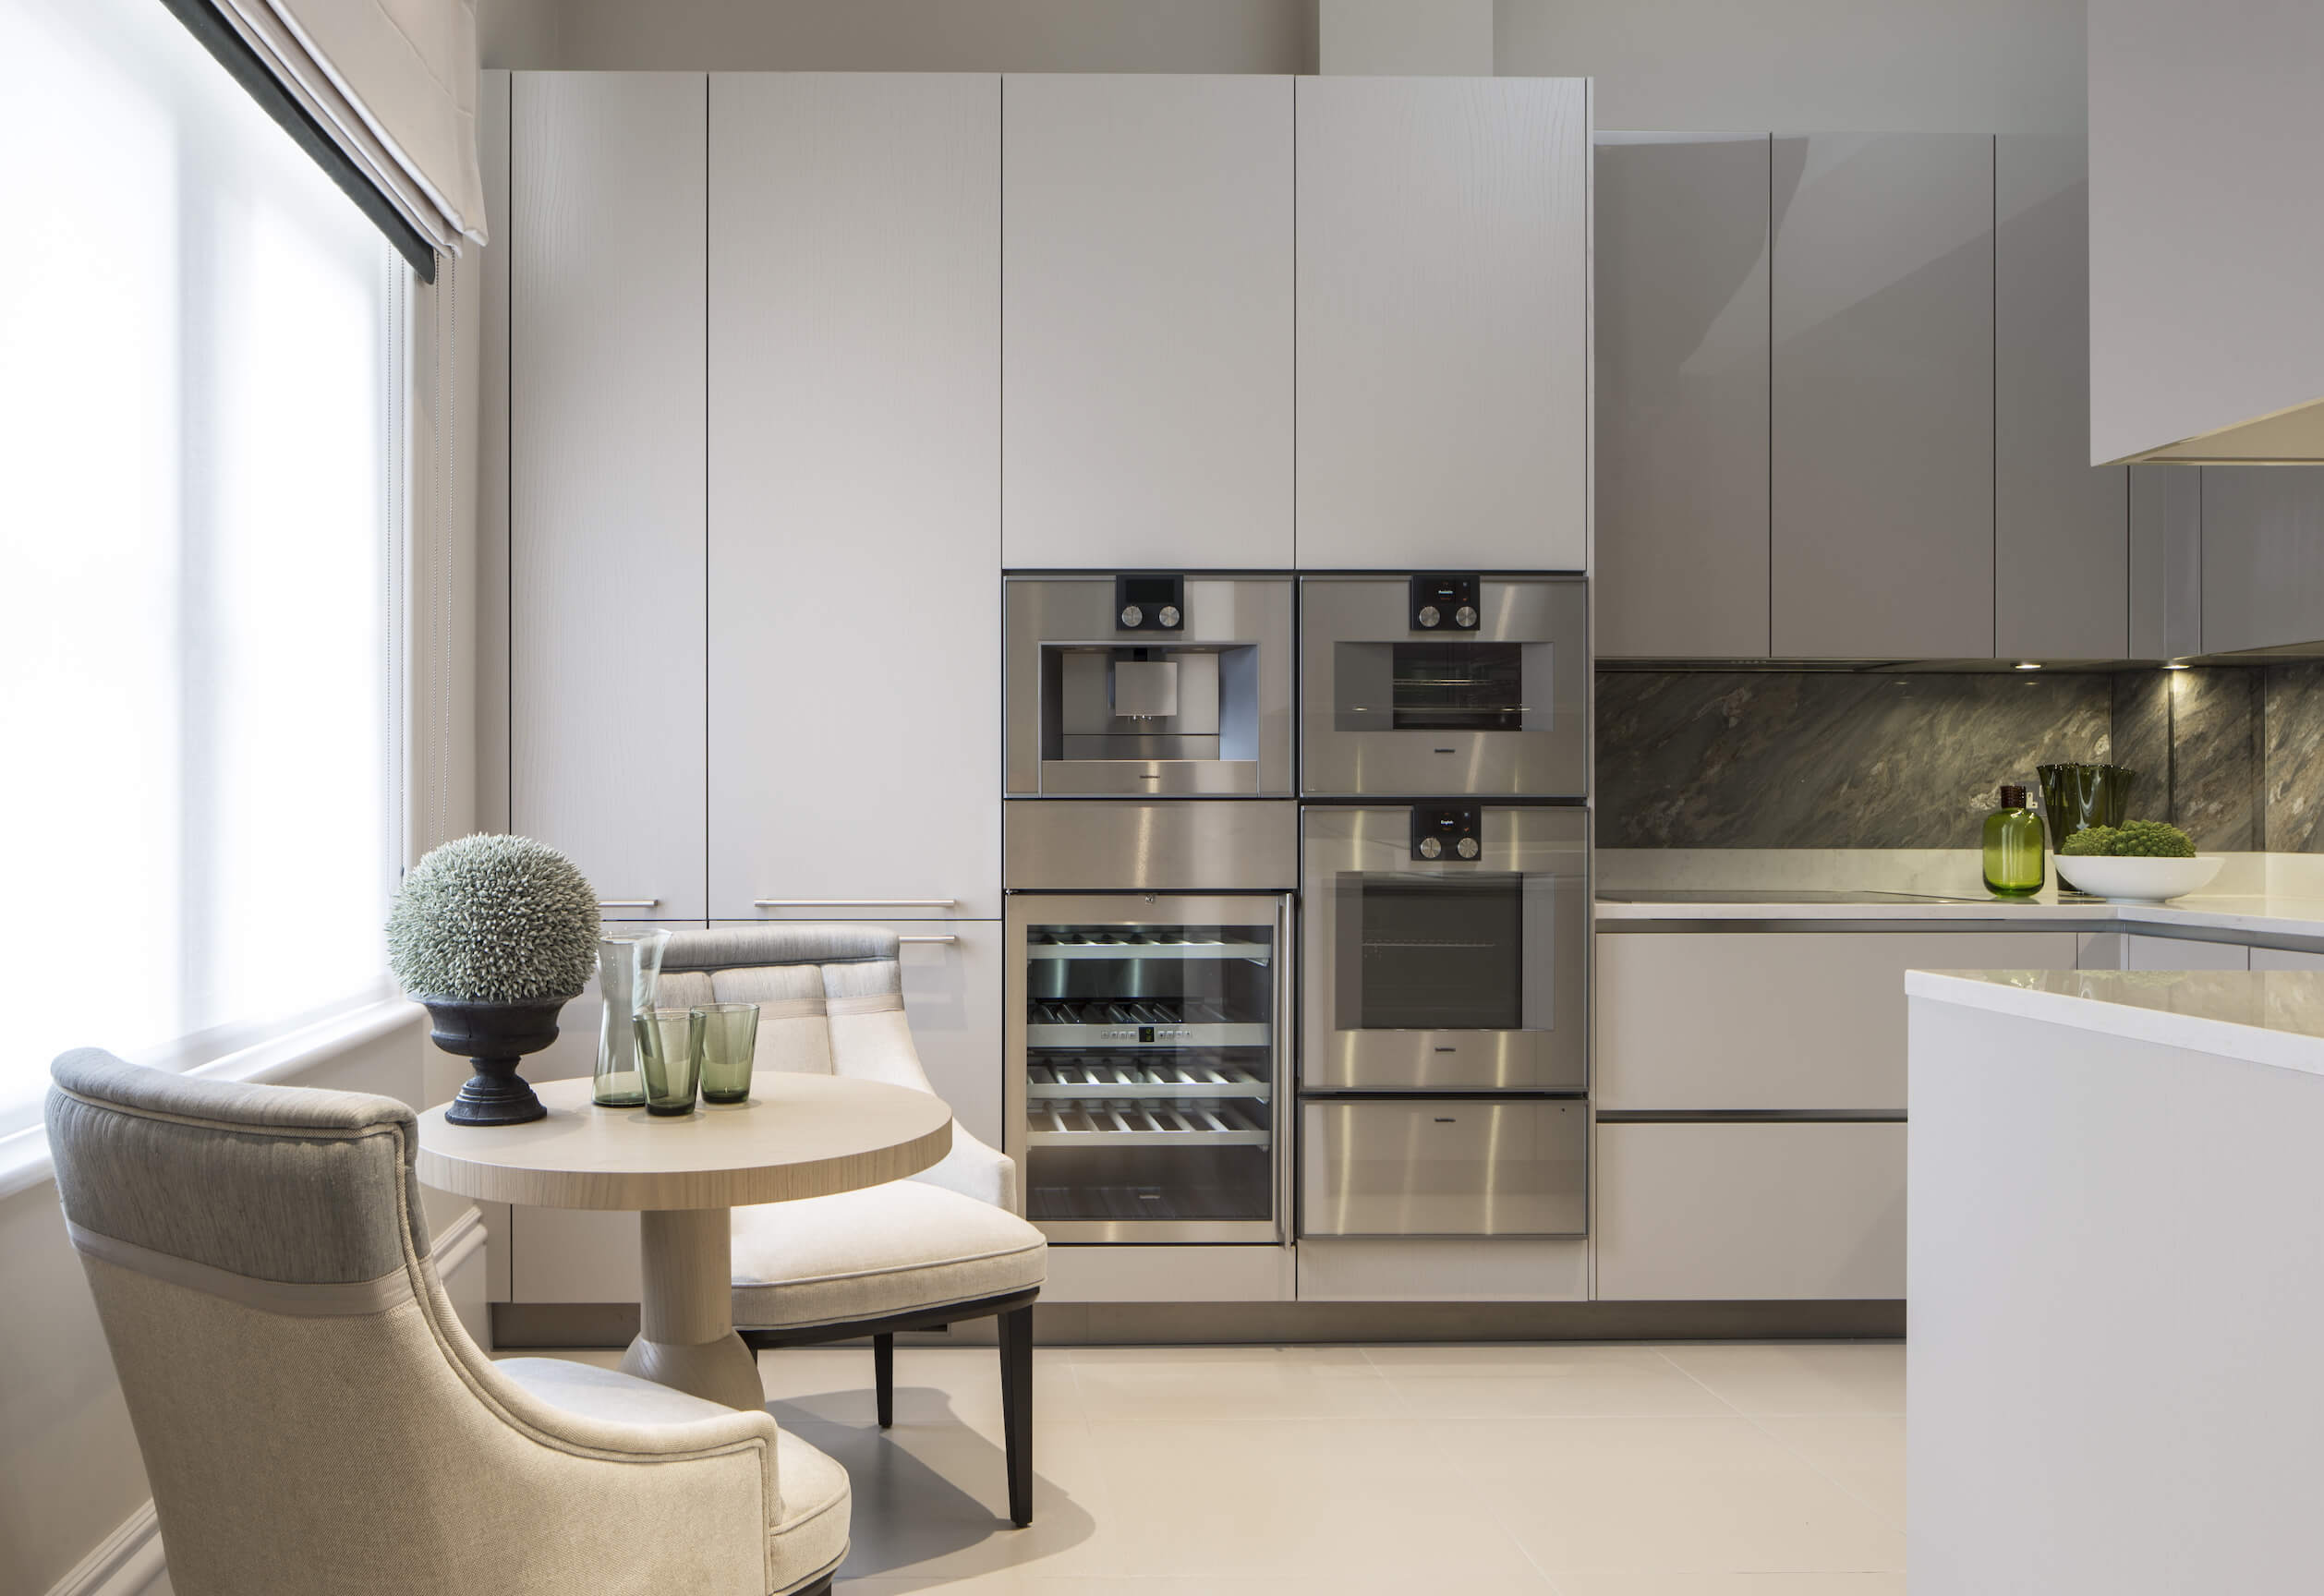 The sleek, minimalist kitchen contains tall off-white cabinetry and stainless steel appliances, contrasting with dark marble backsplash. A pair of chairs matching the dining set wrapps a small circular wood table at left.